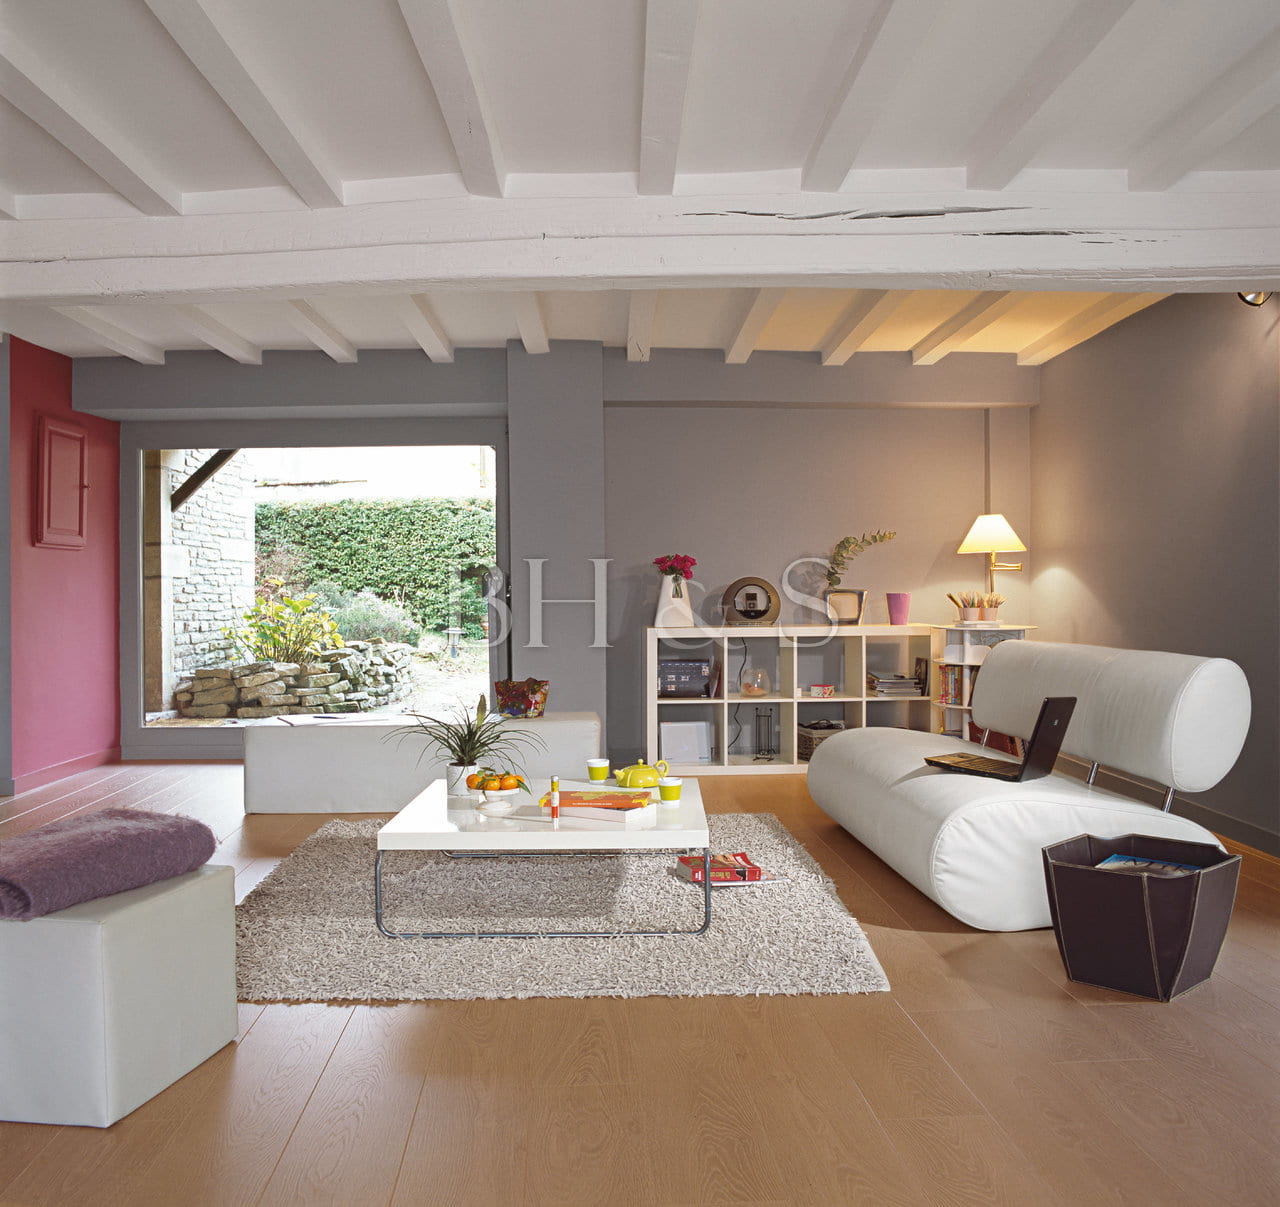 COMPLETE RENOVATION OF A PERIOD HOUSE IN THE WINE AREA IN BURGUNDY